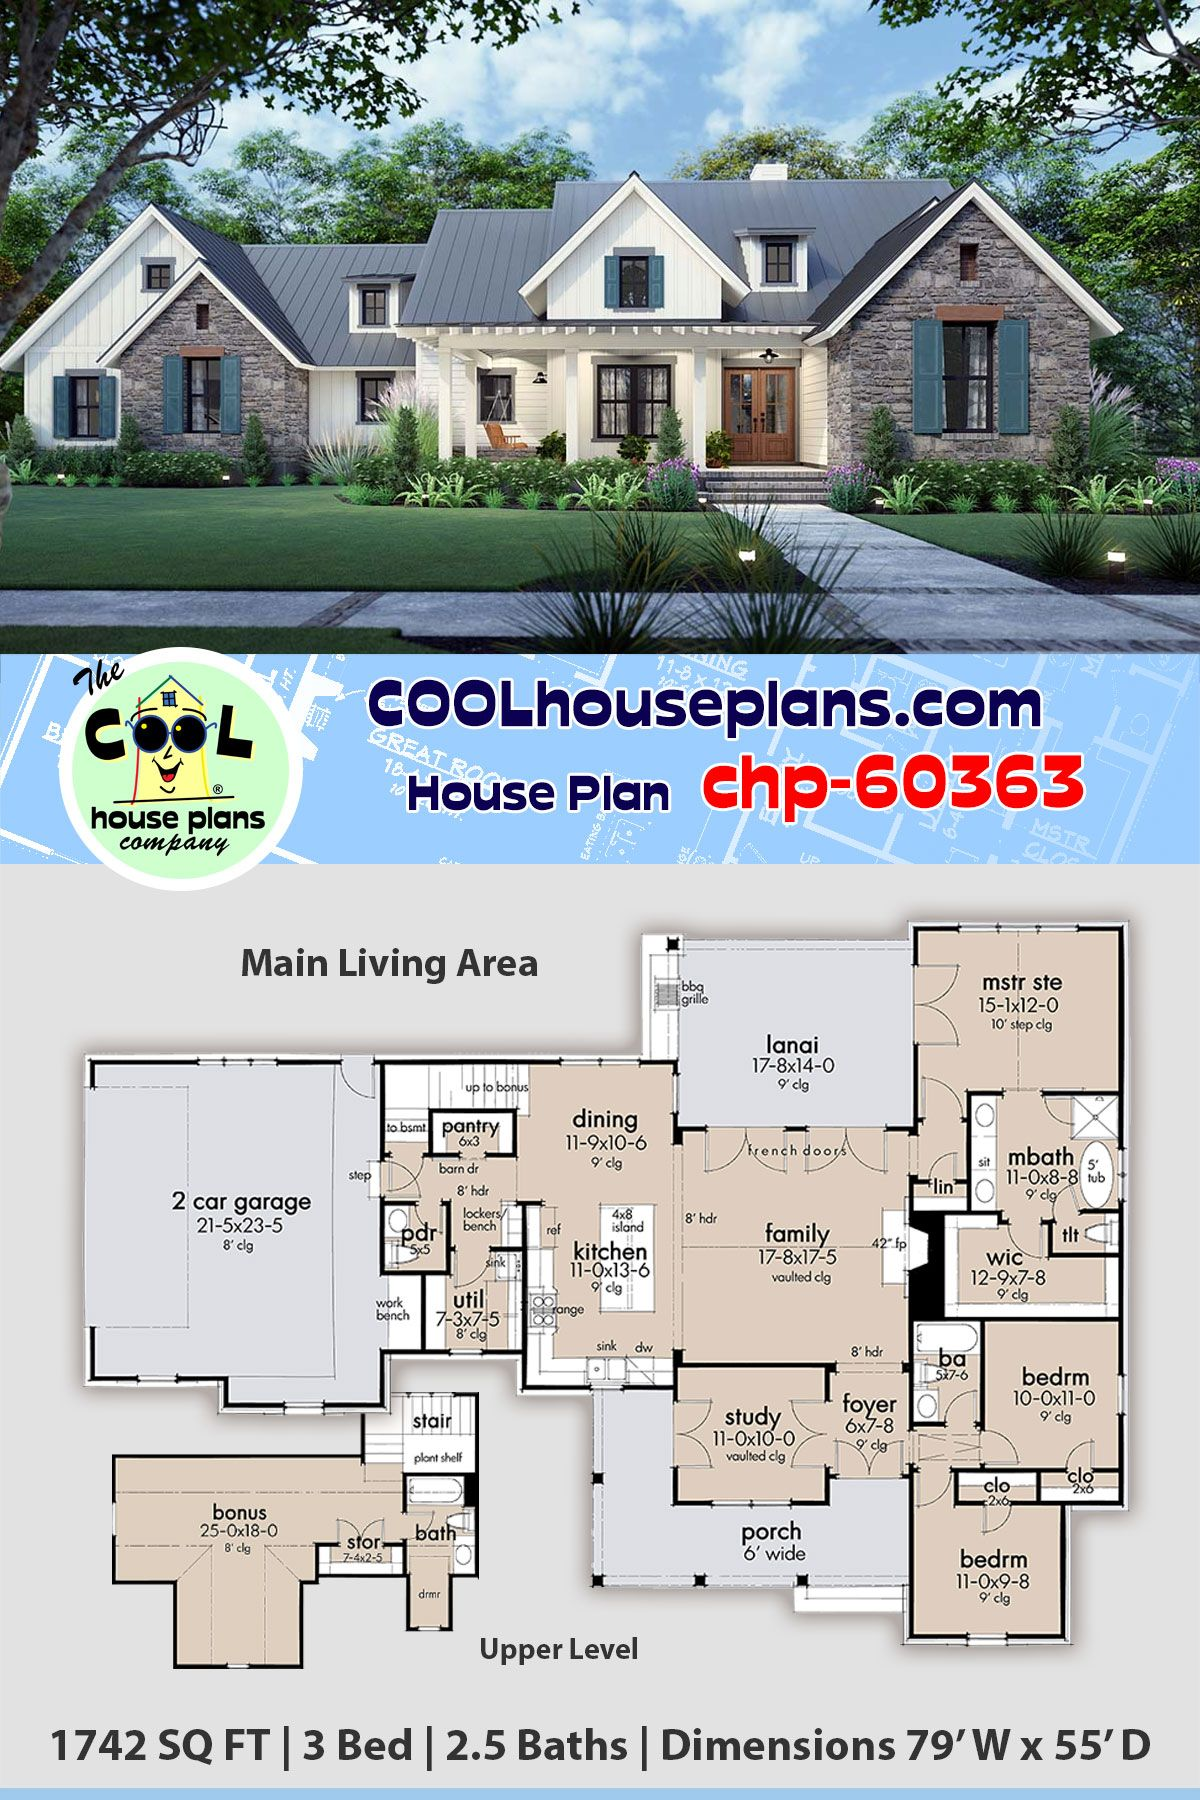 Modern Country Farmhouse Plan chp-60363 is 1742 Sq Ft, 3 Bedrooms, 2.5 Bathrooms and a 2 Bay Garage